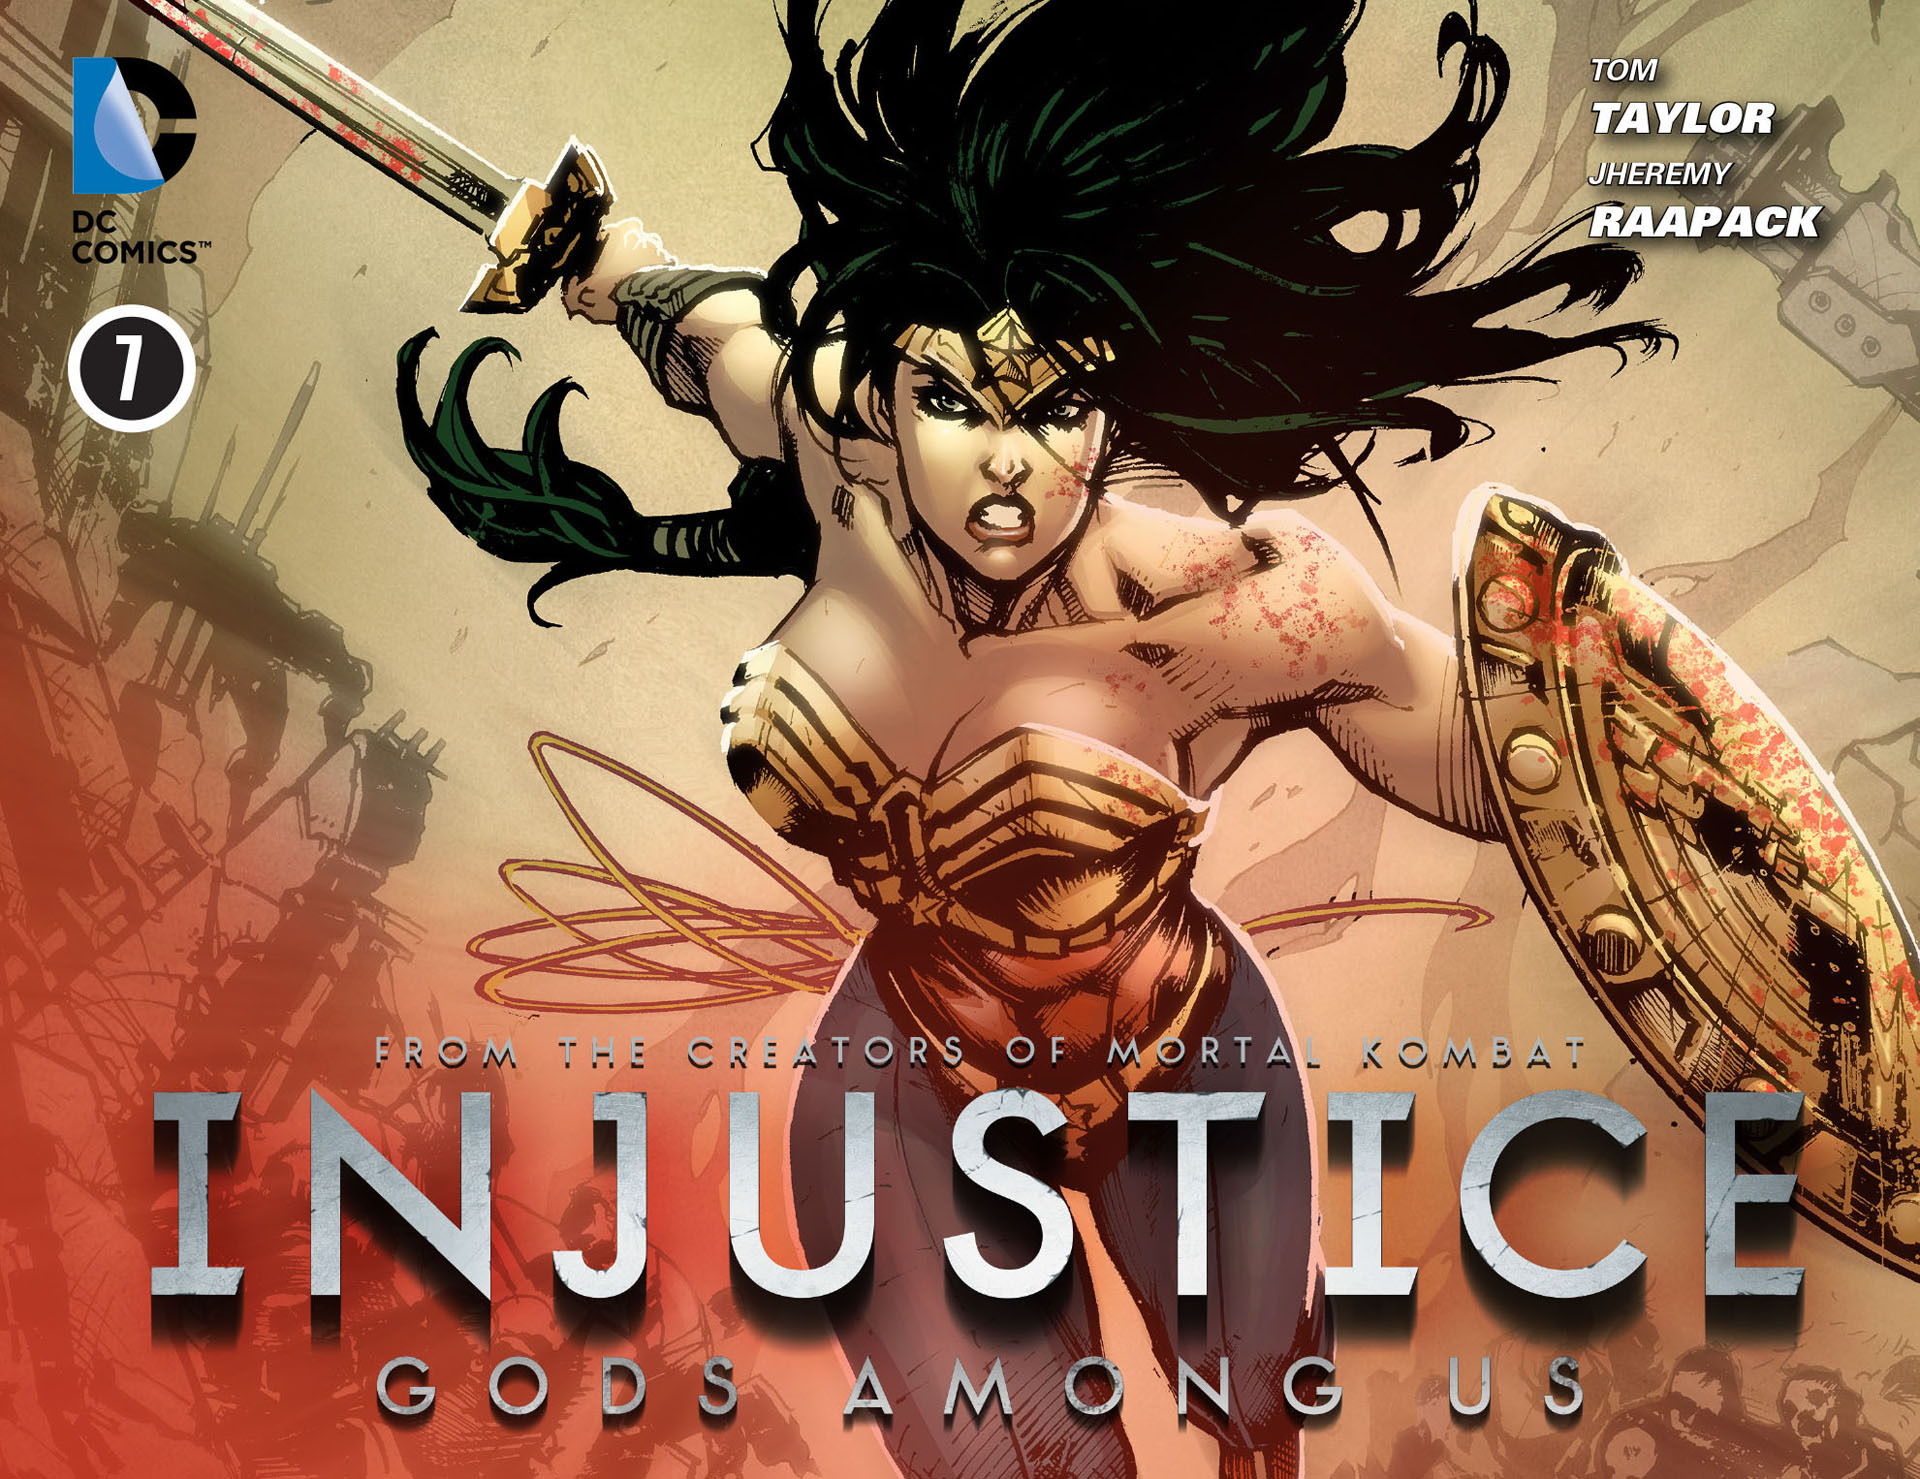 Injustice: Gods Among Us [I] 7 Page 1